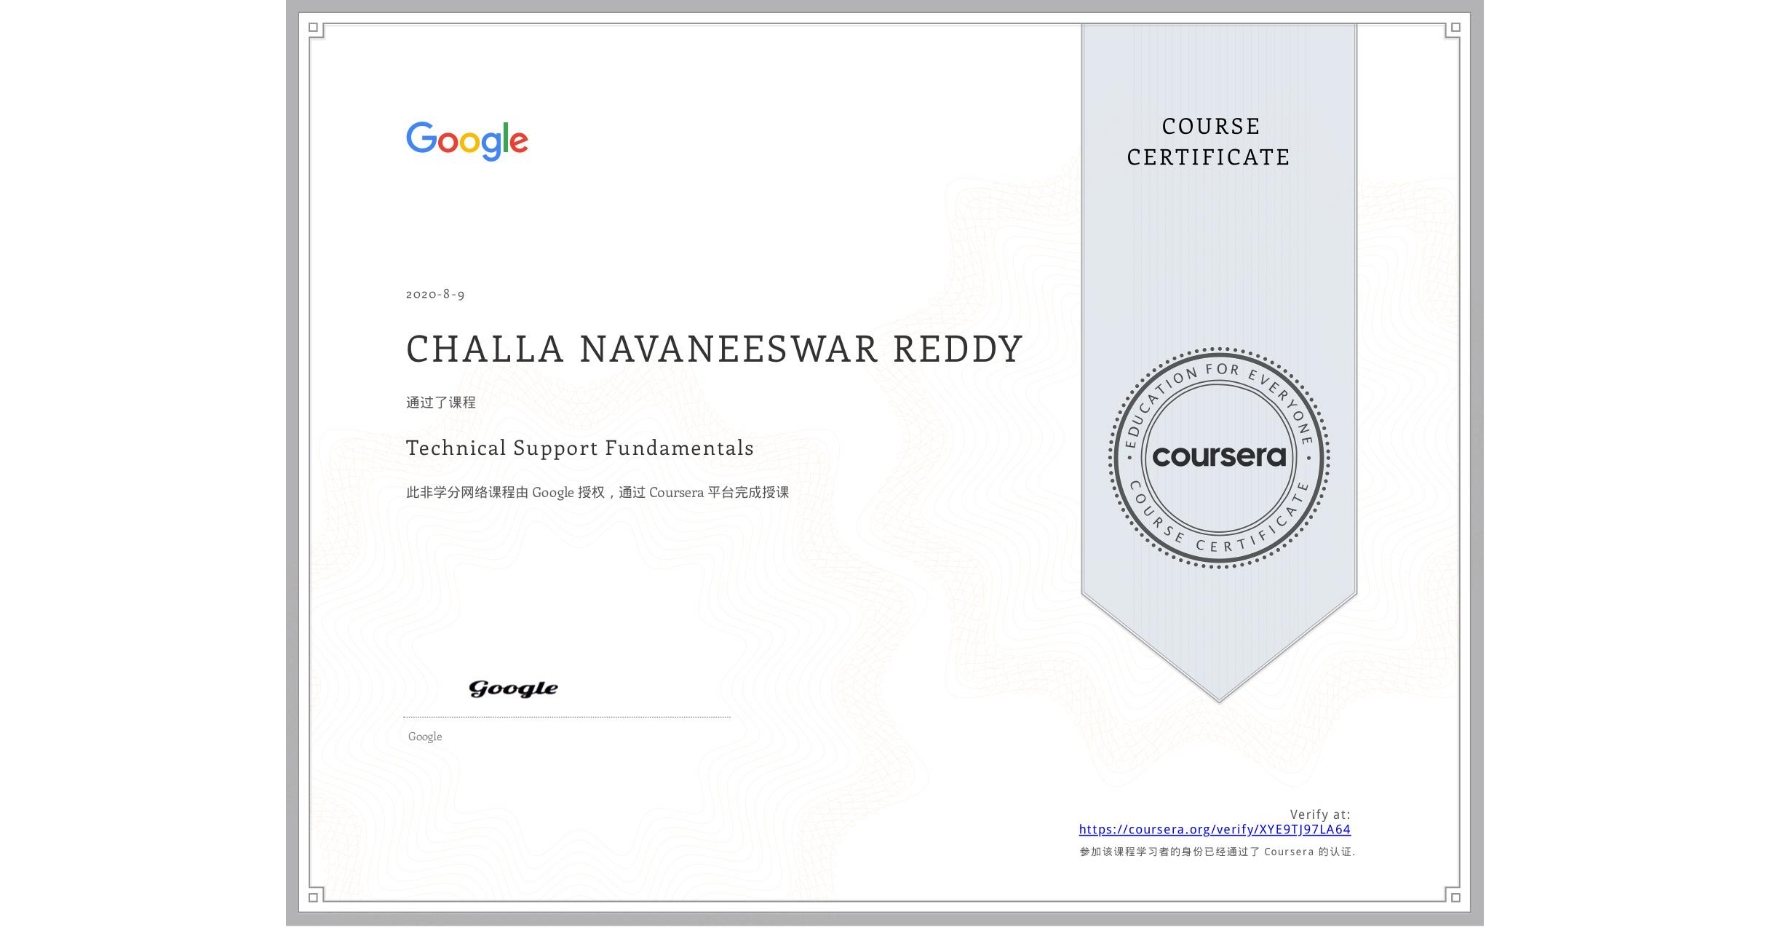 View certificate for CHALLA NAVANEESWAR  REDDY, Technical Support Fundamentals, an online non-credit course authorized by Google and offered through Coursera